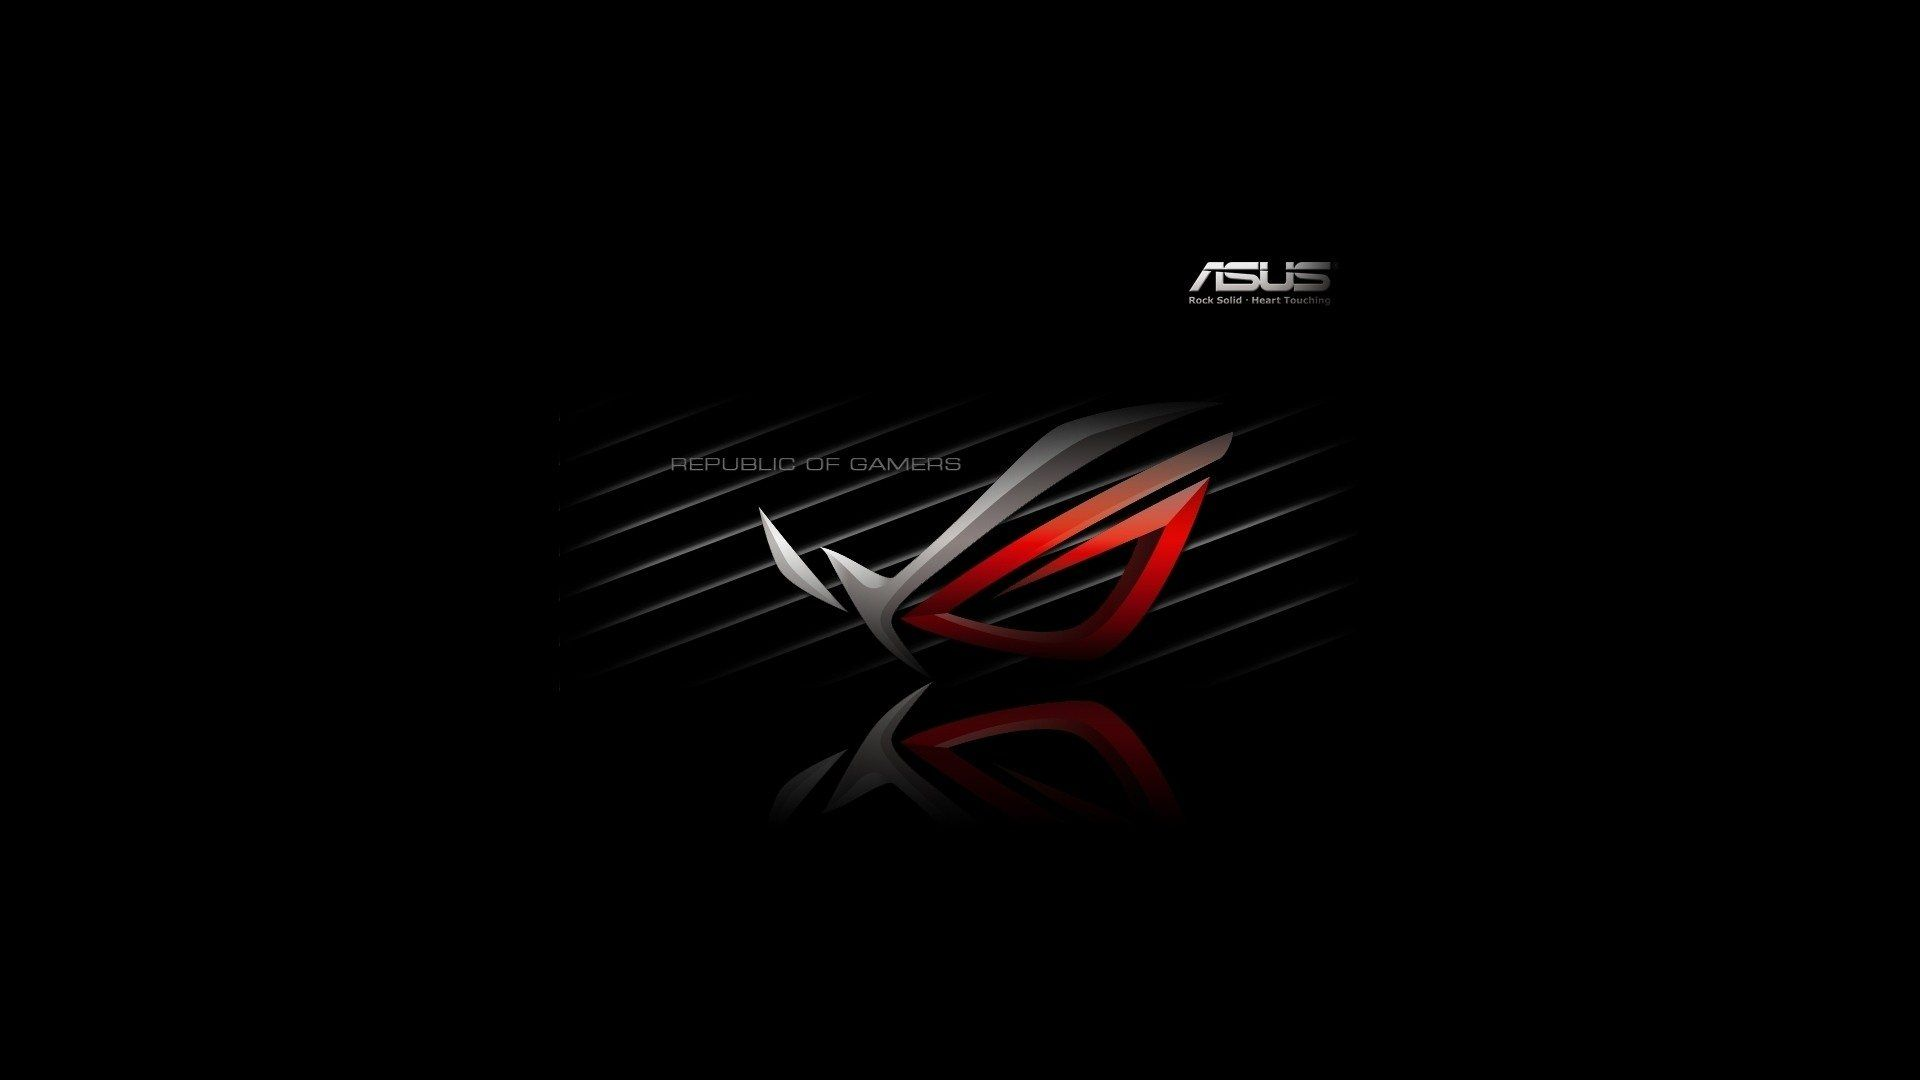 Free Download Asus Rog Wallpaper Picture Image 1920x1080 For